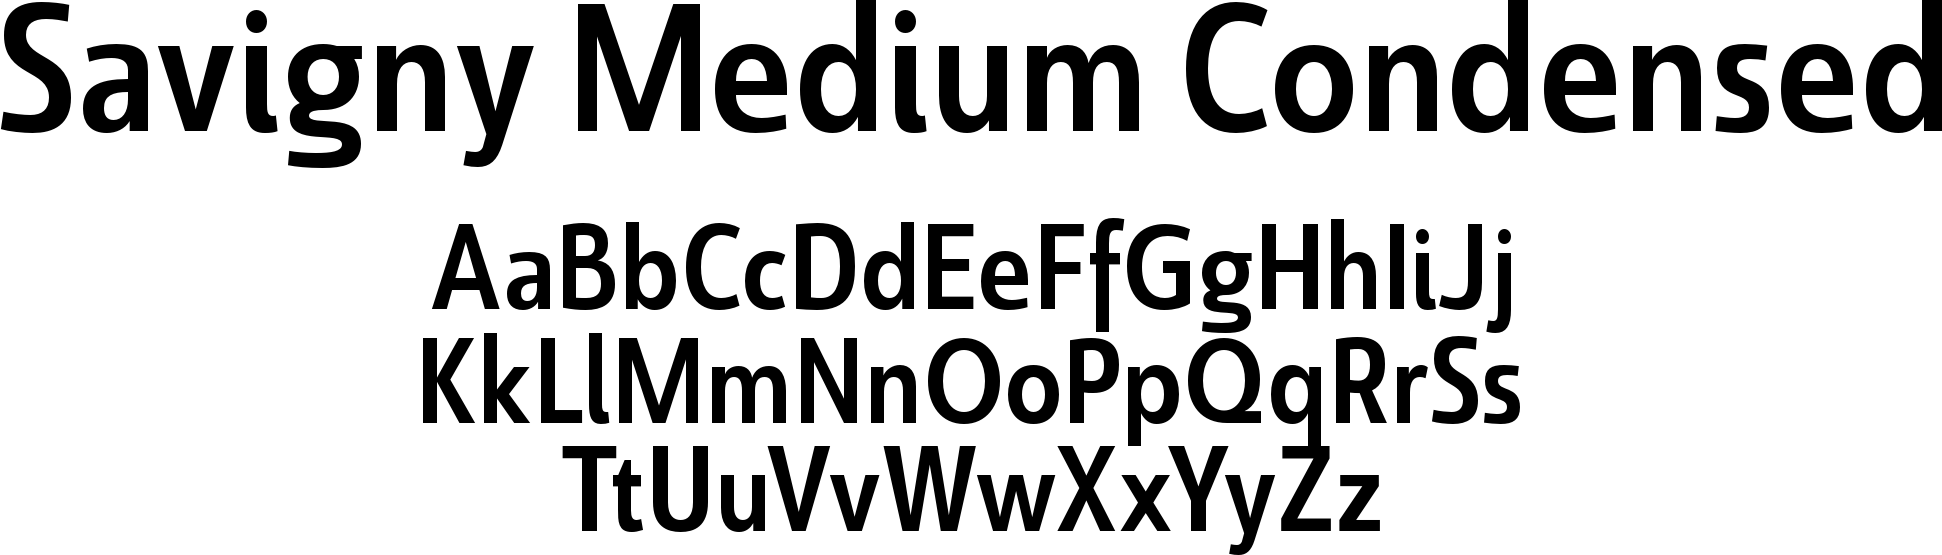 Savigny Medium Condensed